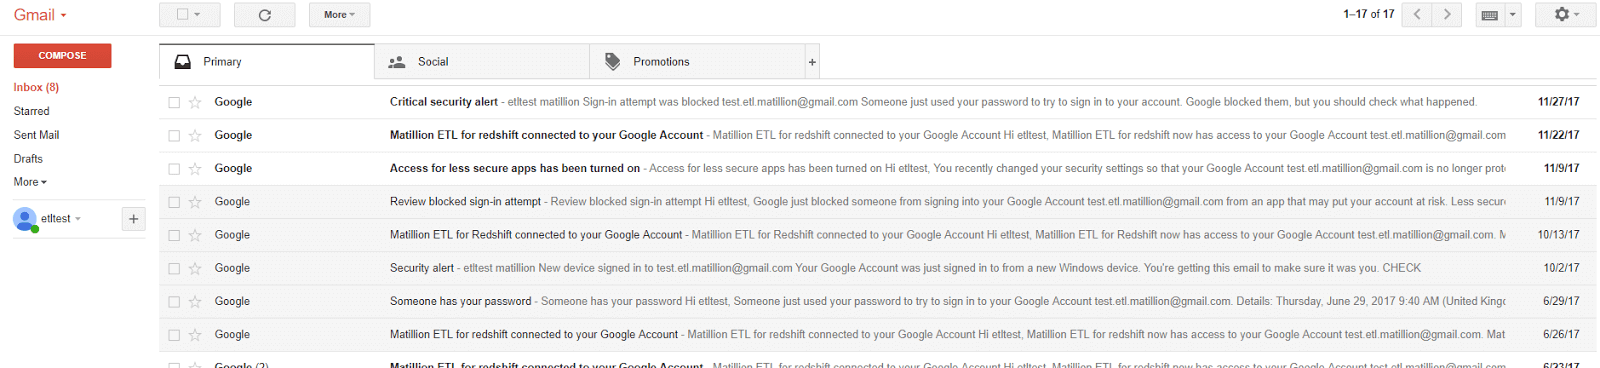 Using the Email Query component in Matillion ETL for Snowflake - Gmail